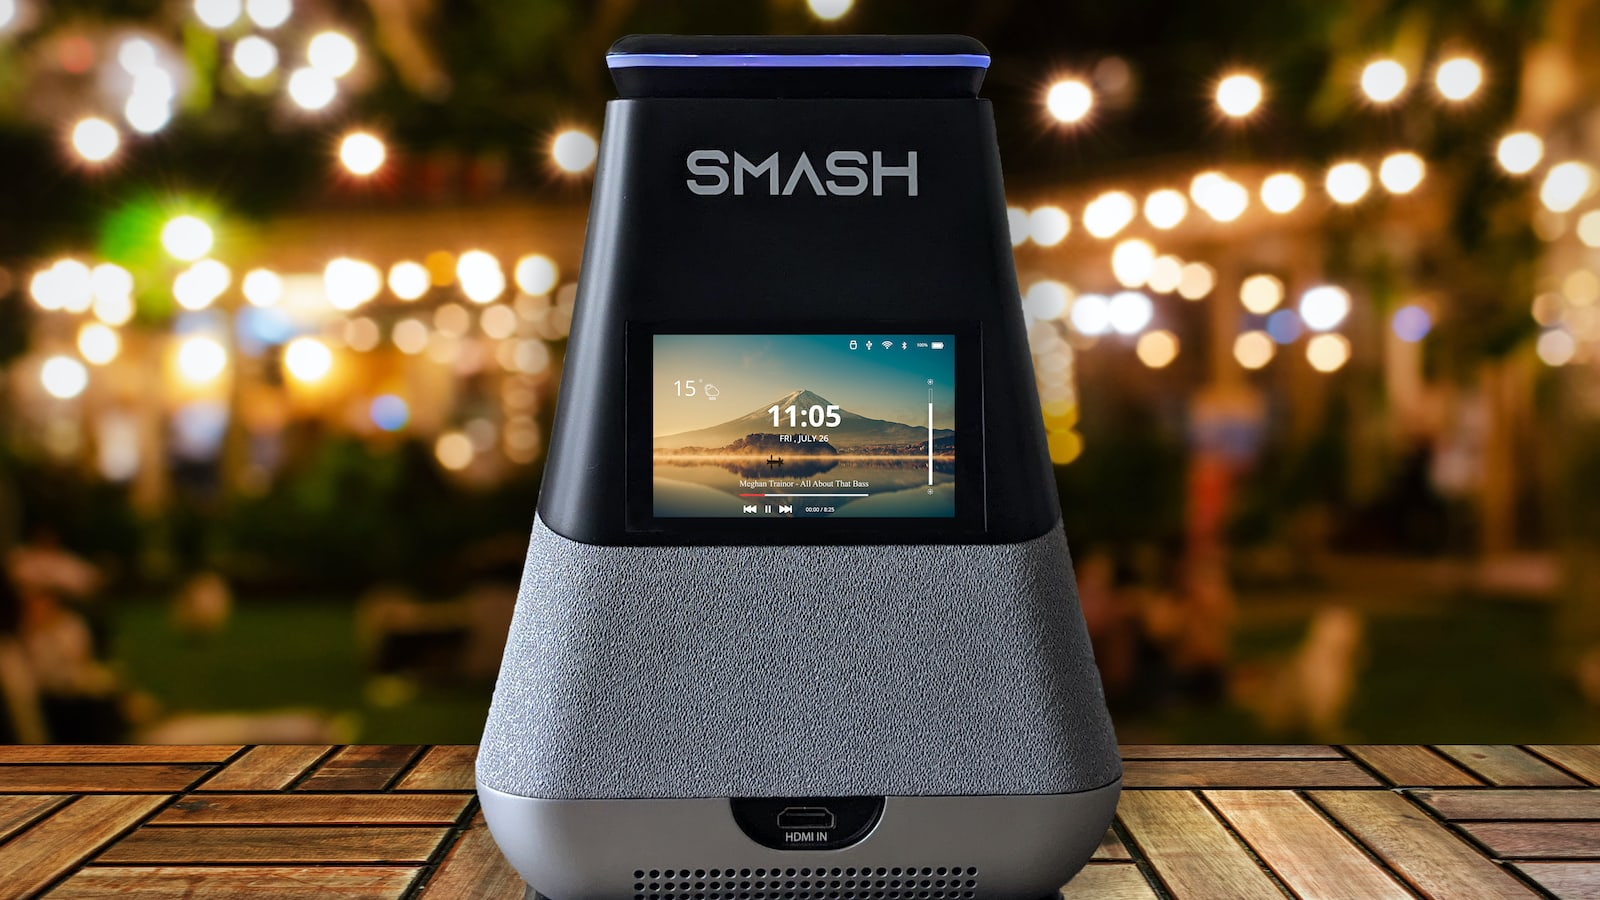 WooBloo SMASH portable smart projector boasts 300 lumens and 360º sound